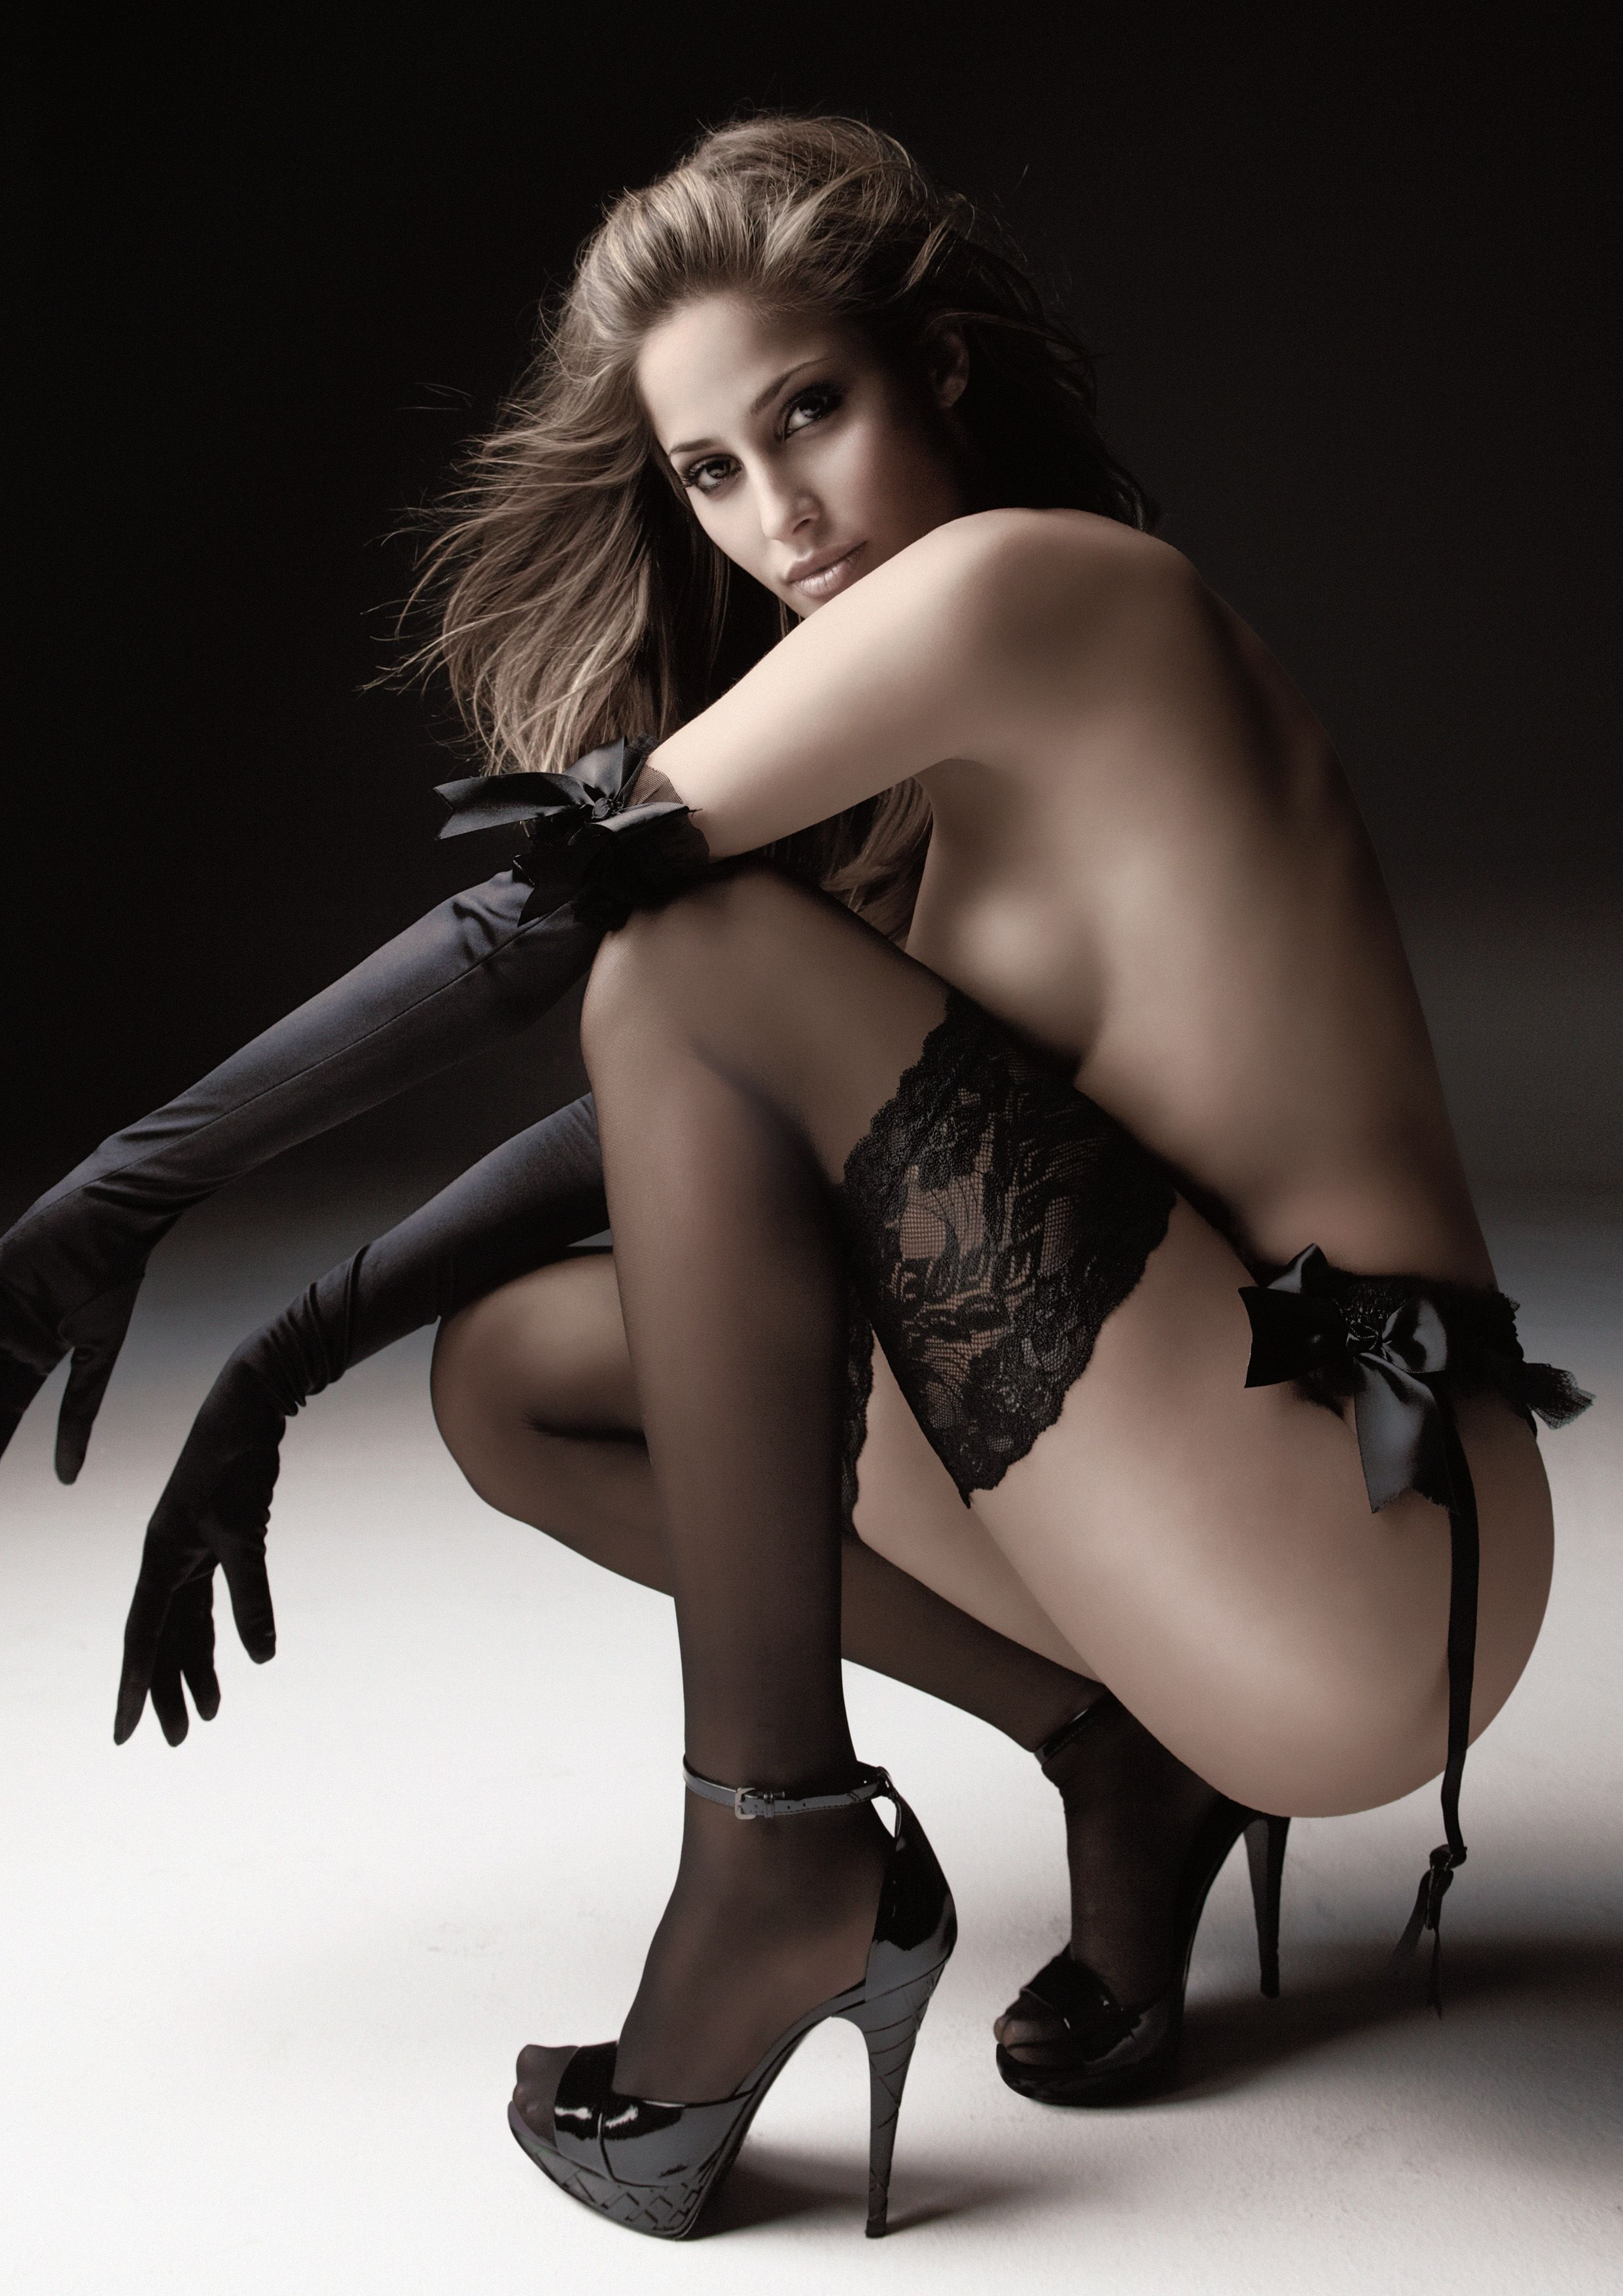 Isabela Soncini black stockings, panties, and gloves